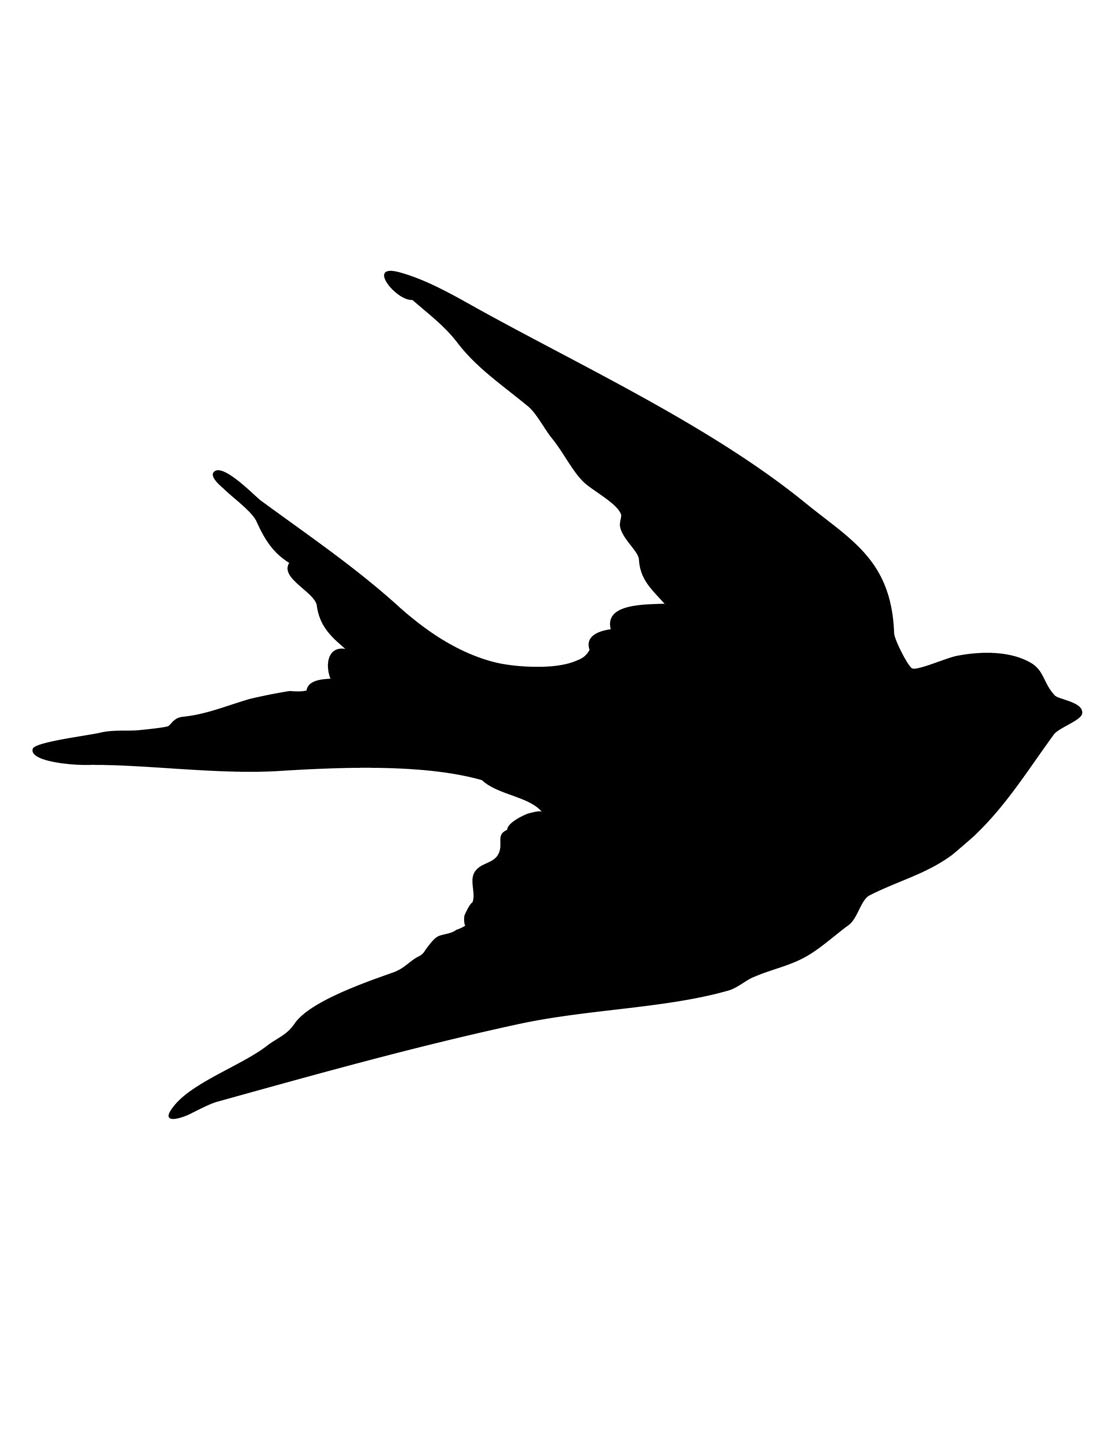 Blackbird clipart bird silhouette The Silhouettes Bird Swallows Fairy